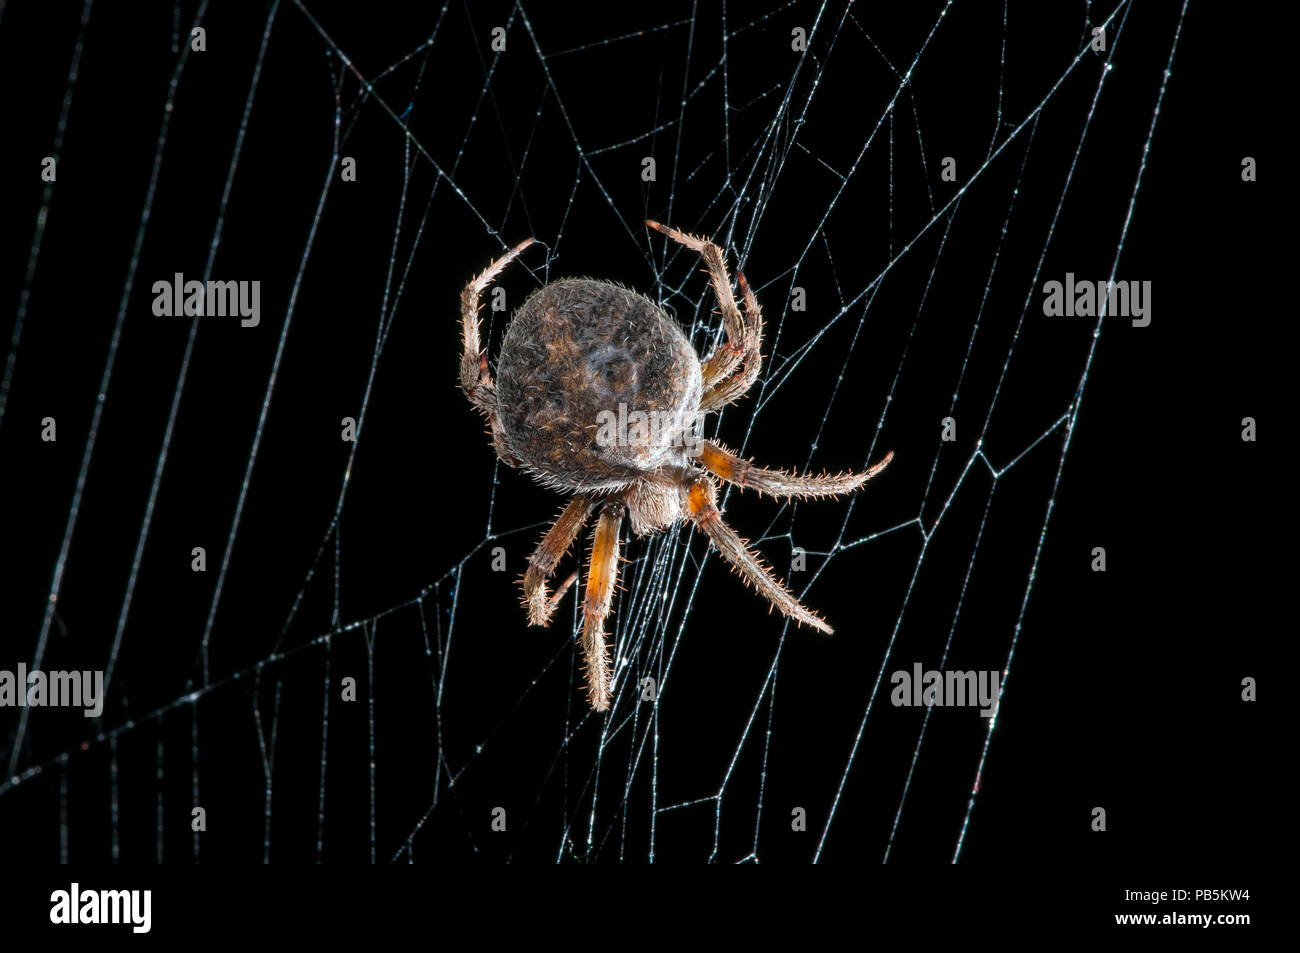 Leavenworth, Kansas. Spotted Orb Weaver spider { Neoscona crucifera } in web at night. - Stock Image